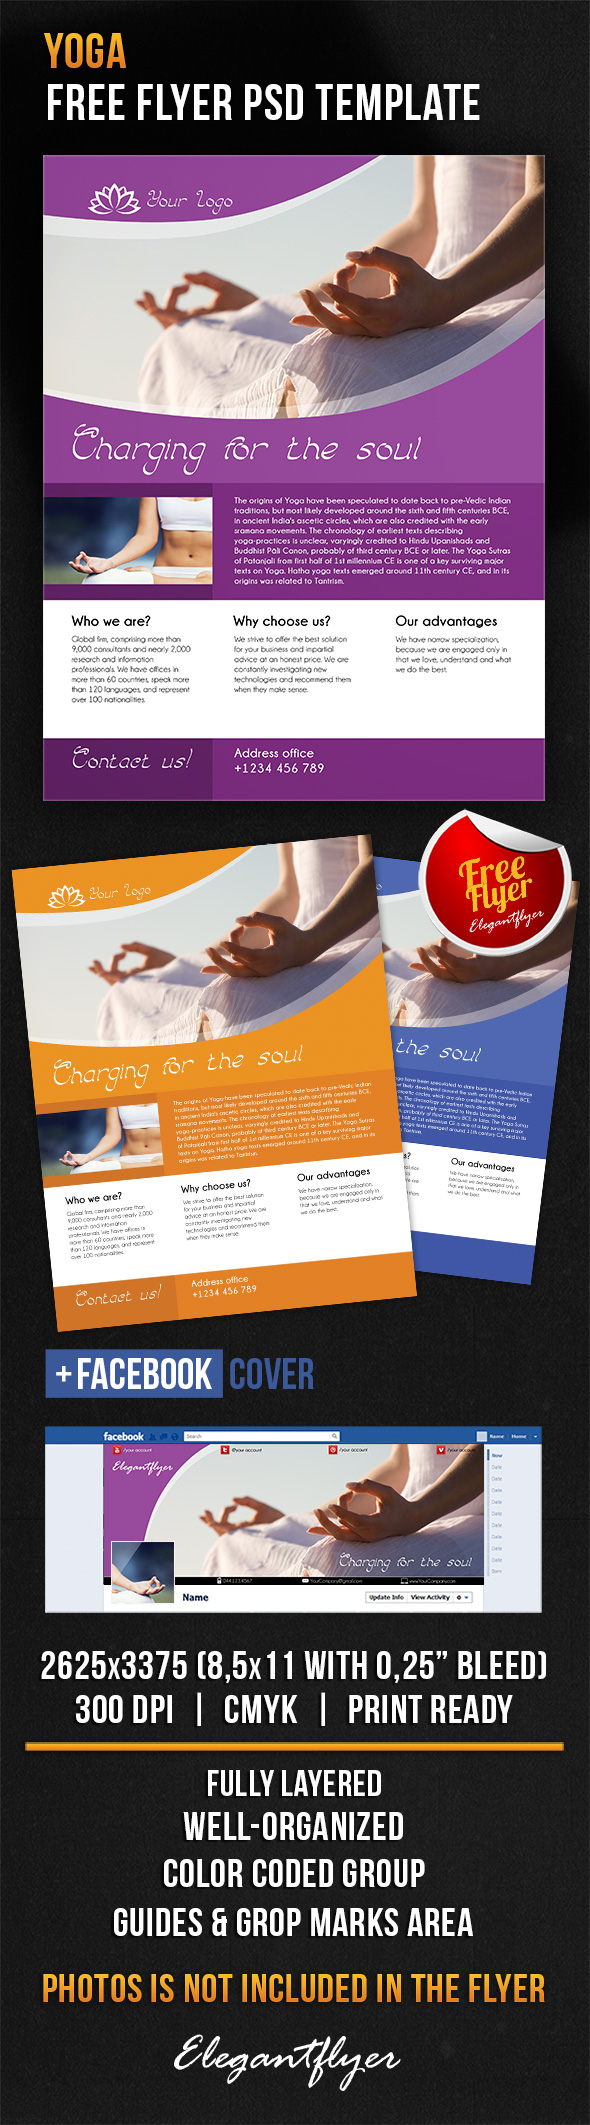 Free Poster for Yoga Poses